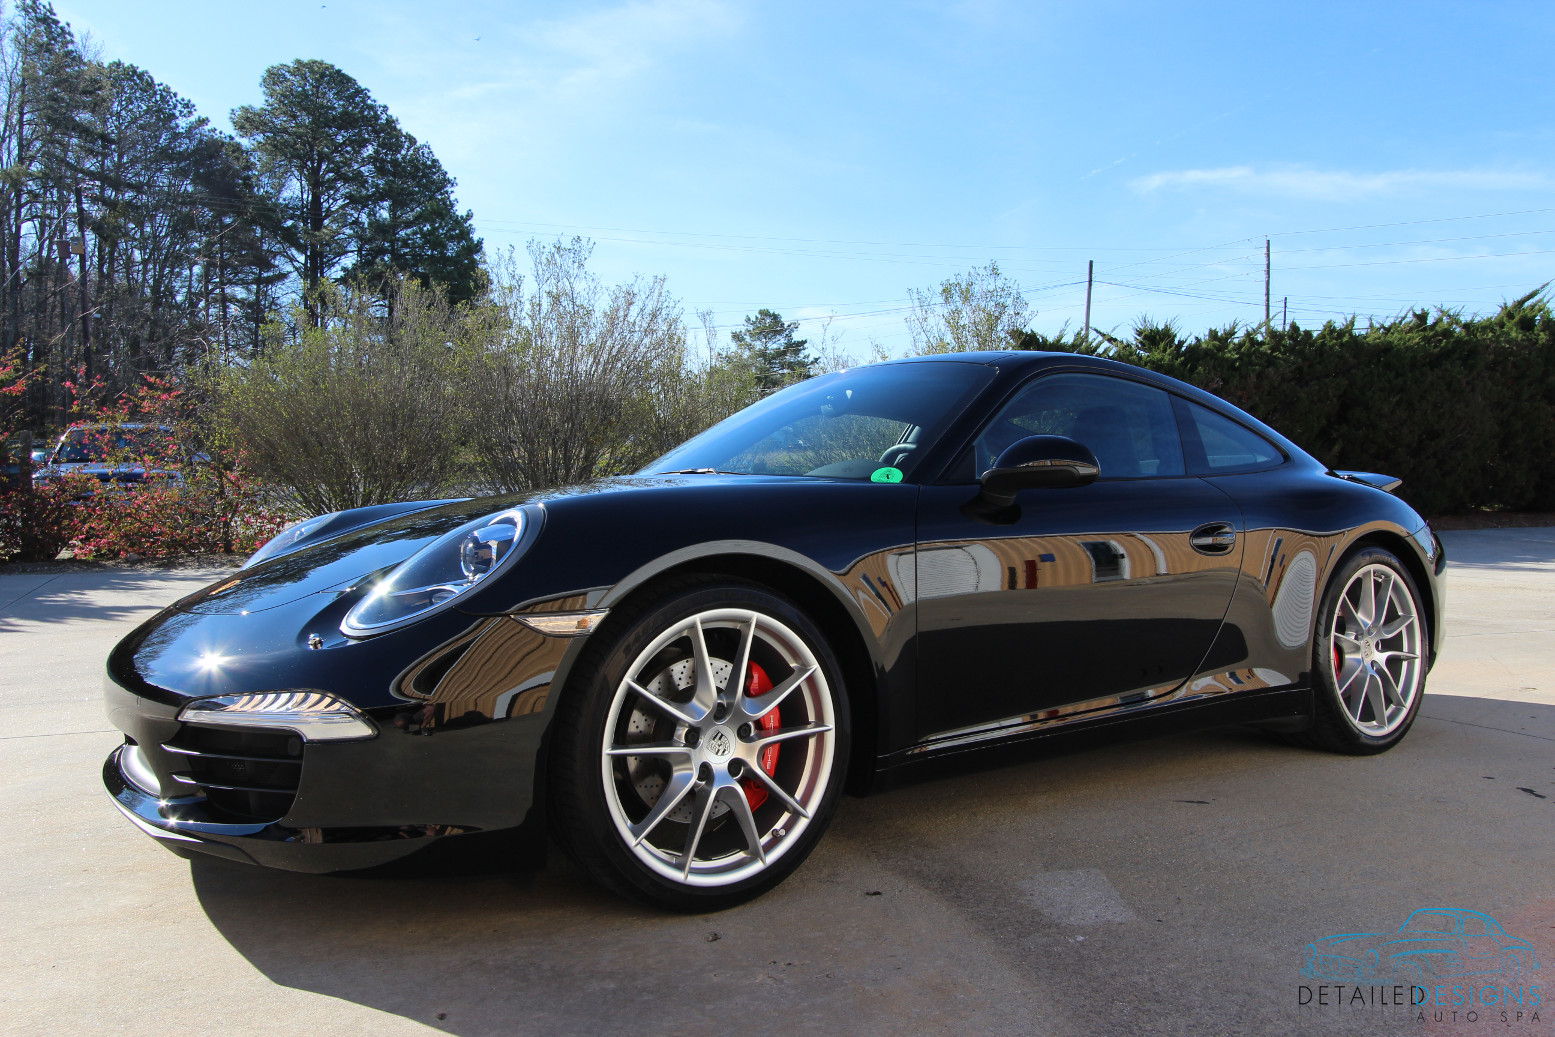 porsche detailing atlanta archives detailed designs auto spa. Black Bedroom Furniture Sets. Home Design Ideas